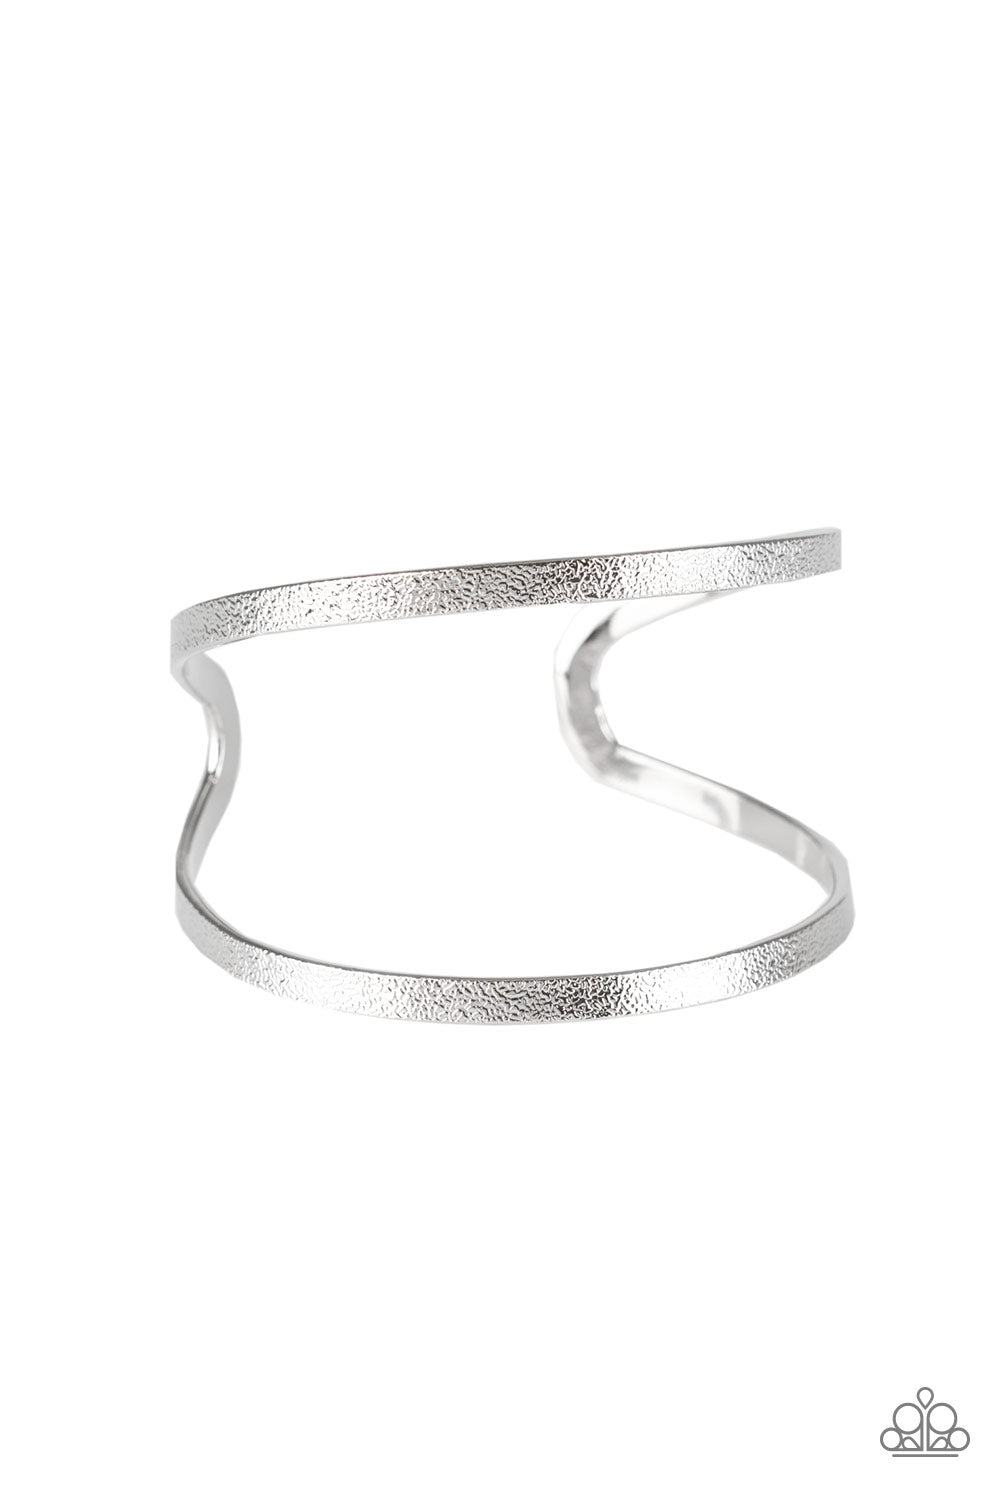 Grenada Goddess - Paparazzi Silver Cuff Bracelet - Be Adored Jewelry